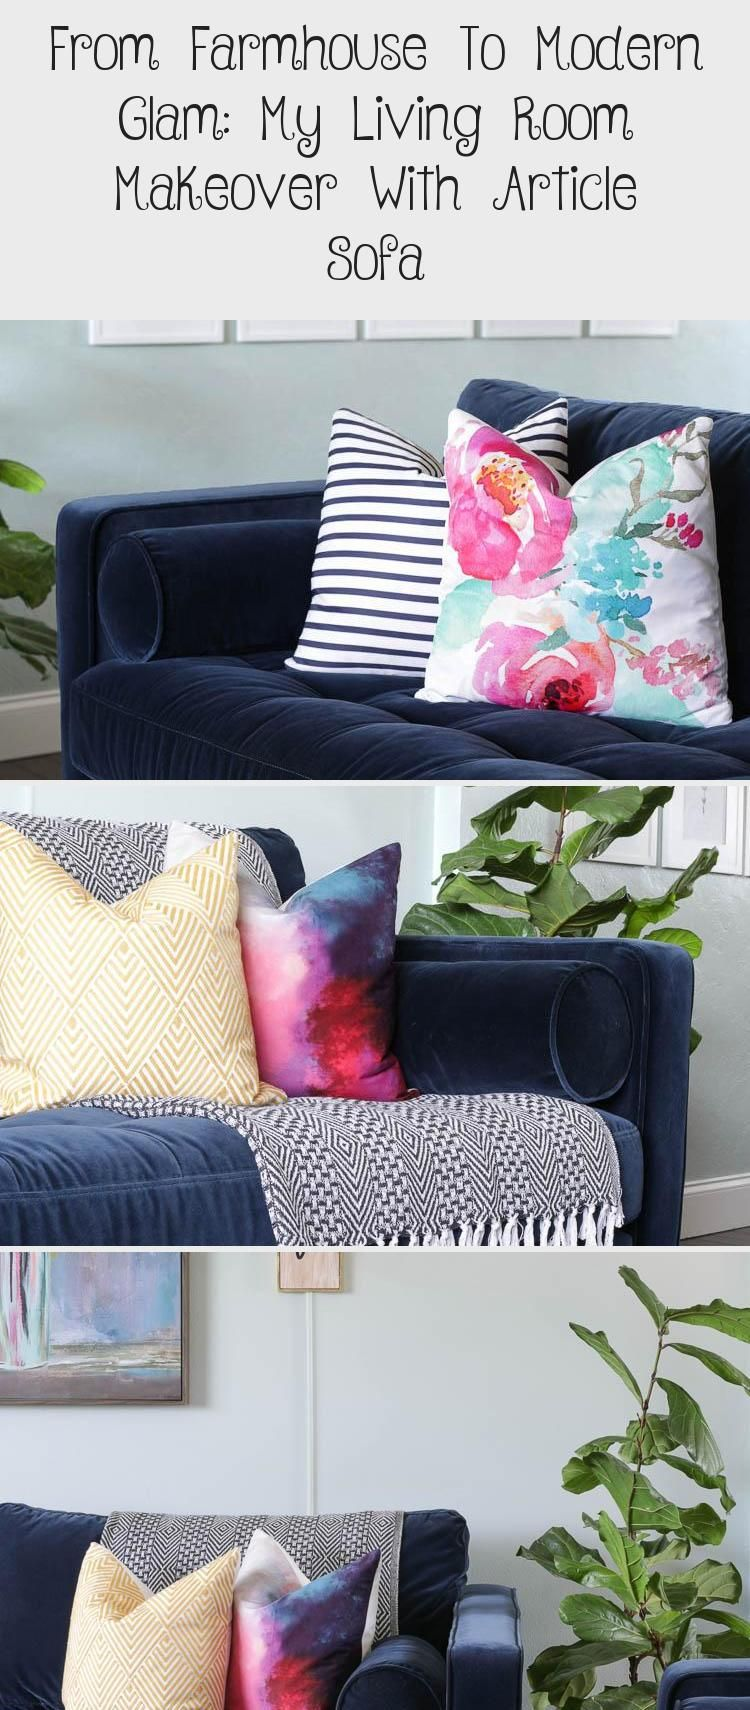 From Farmhouse To Modern Glam: My Living Room Makeover With Article Sofa – Bilgi Tahtası